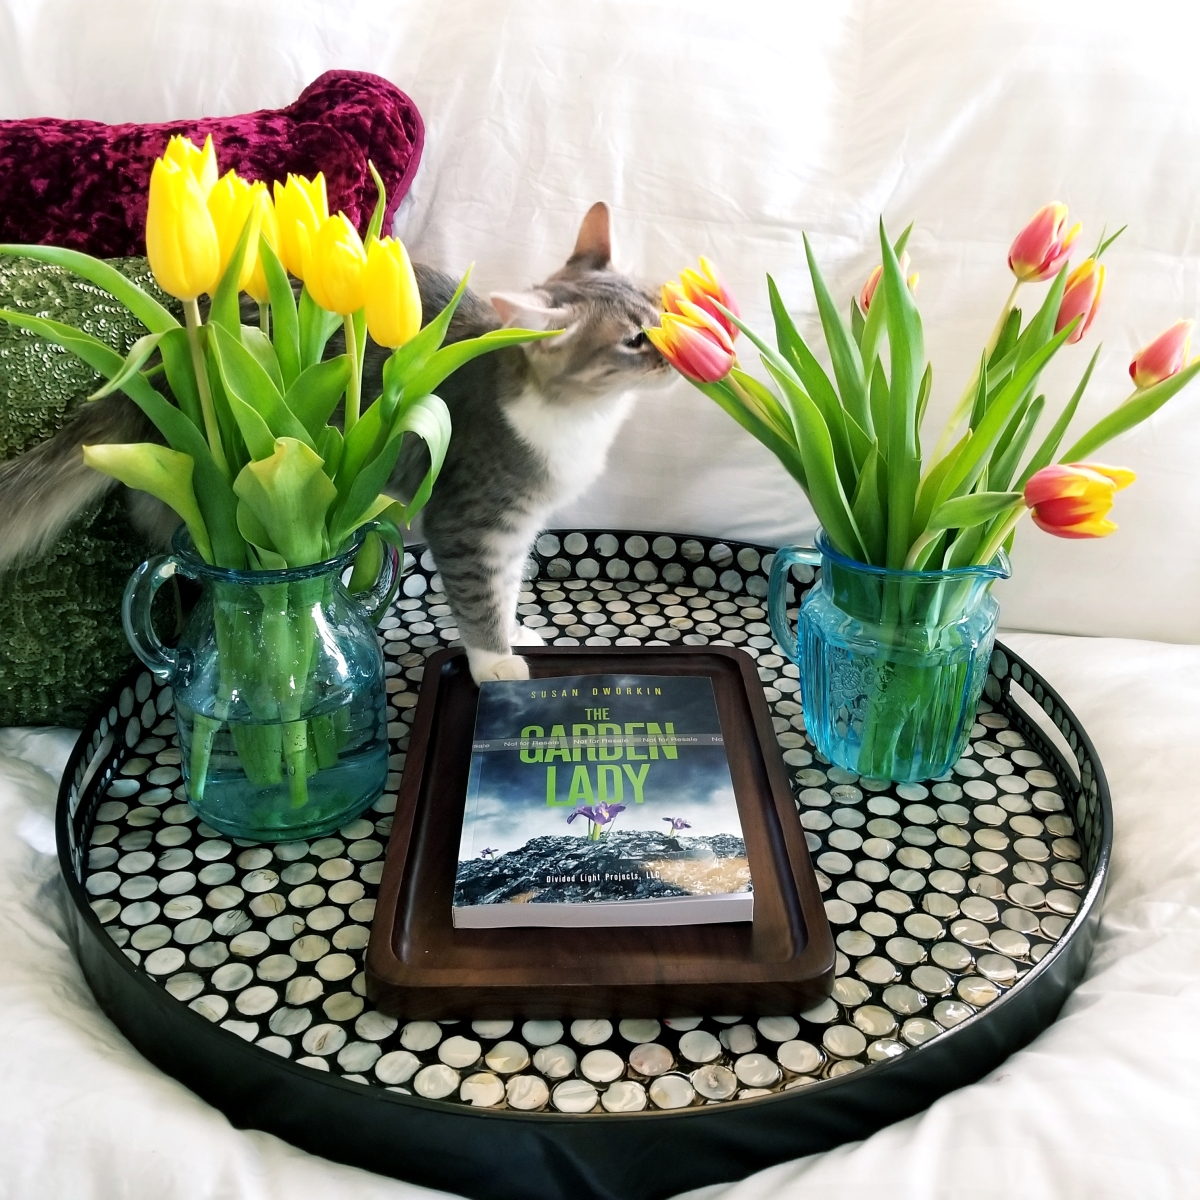 The Garden Lady by Susan Dworkin #bookreview #tarheelreader #thrgardenlady @tlcbooktours #thegardenlady #blogtour